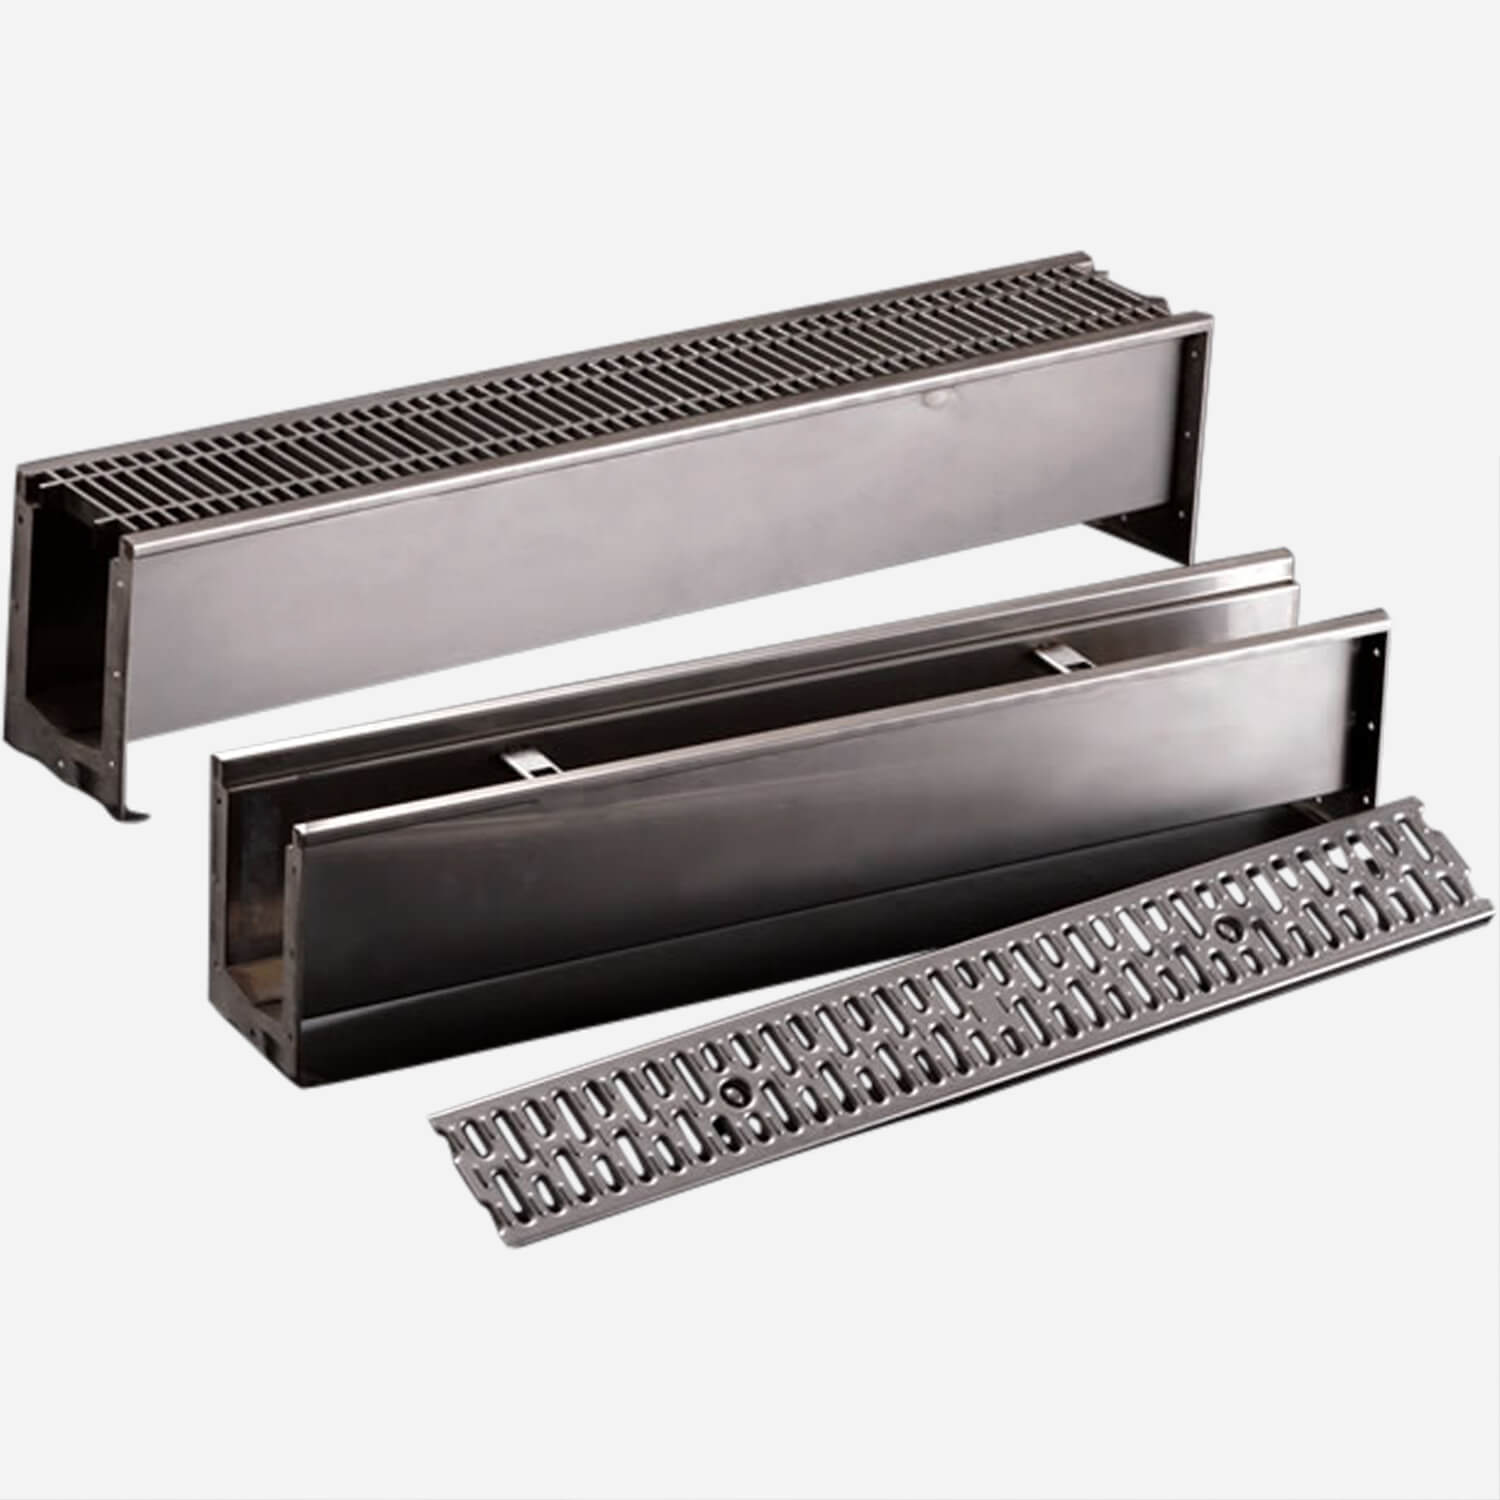 Modular Stainless Steel Trench Drain System